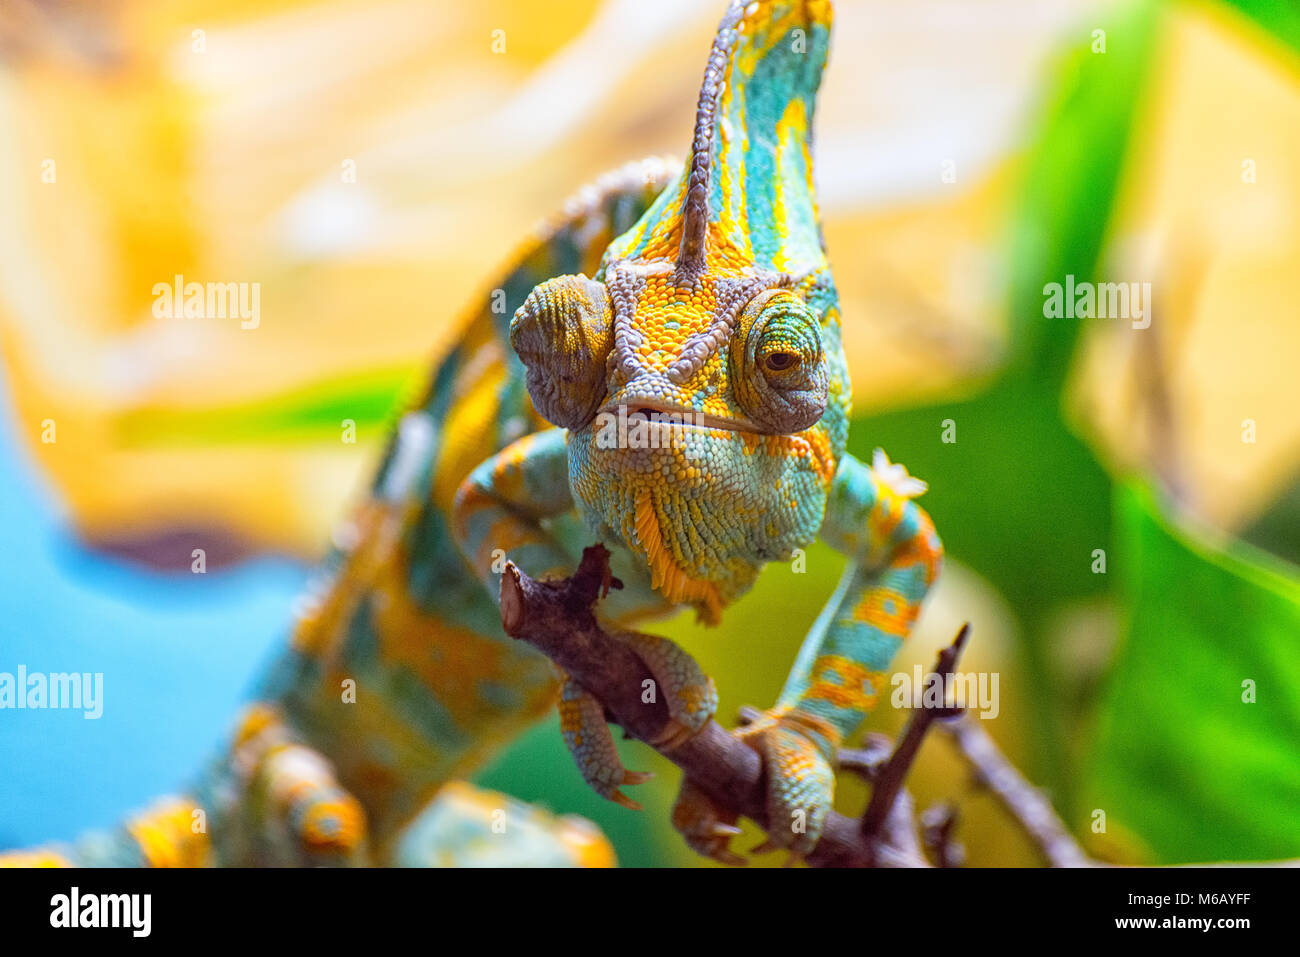 The colorful Chameleon - Stock Image